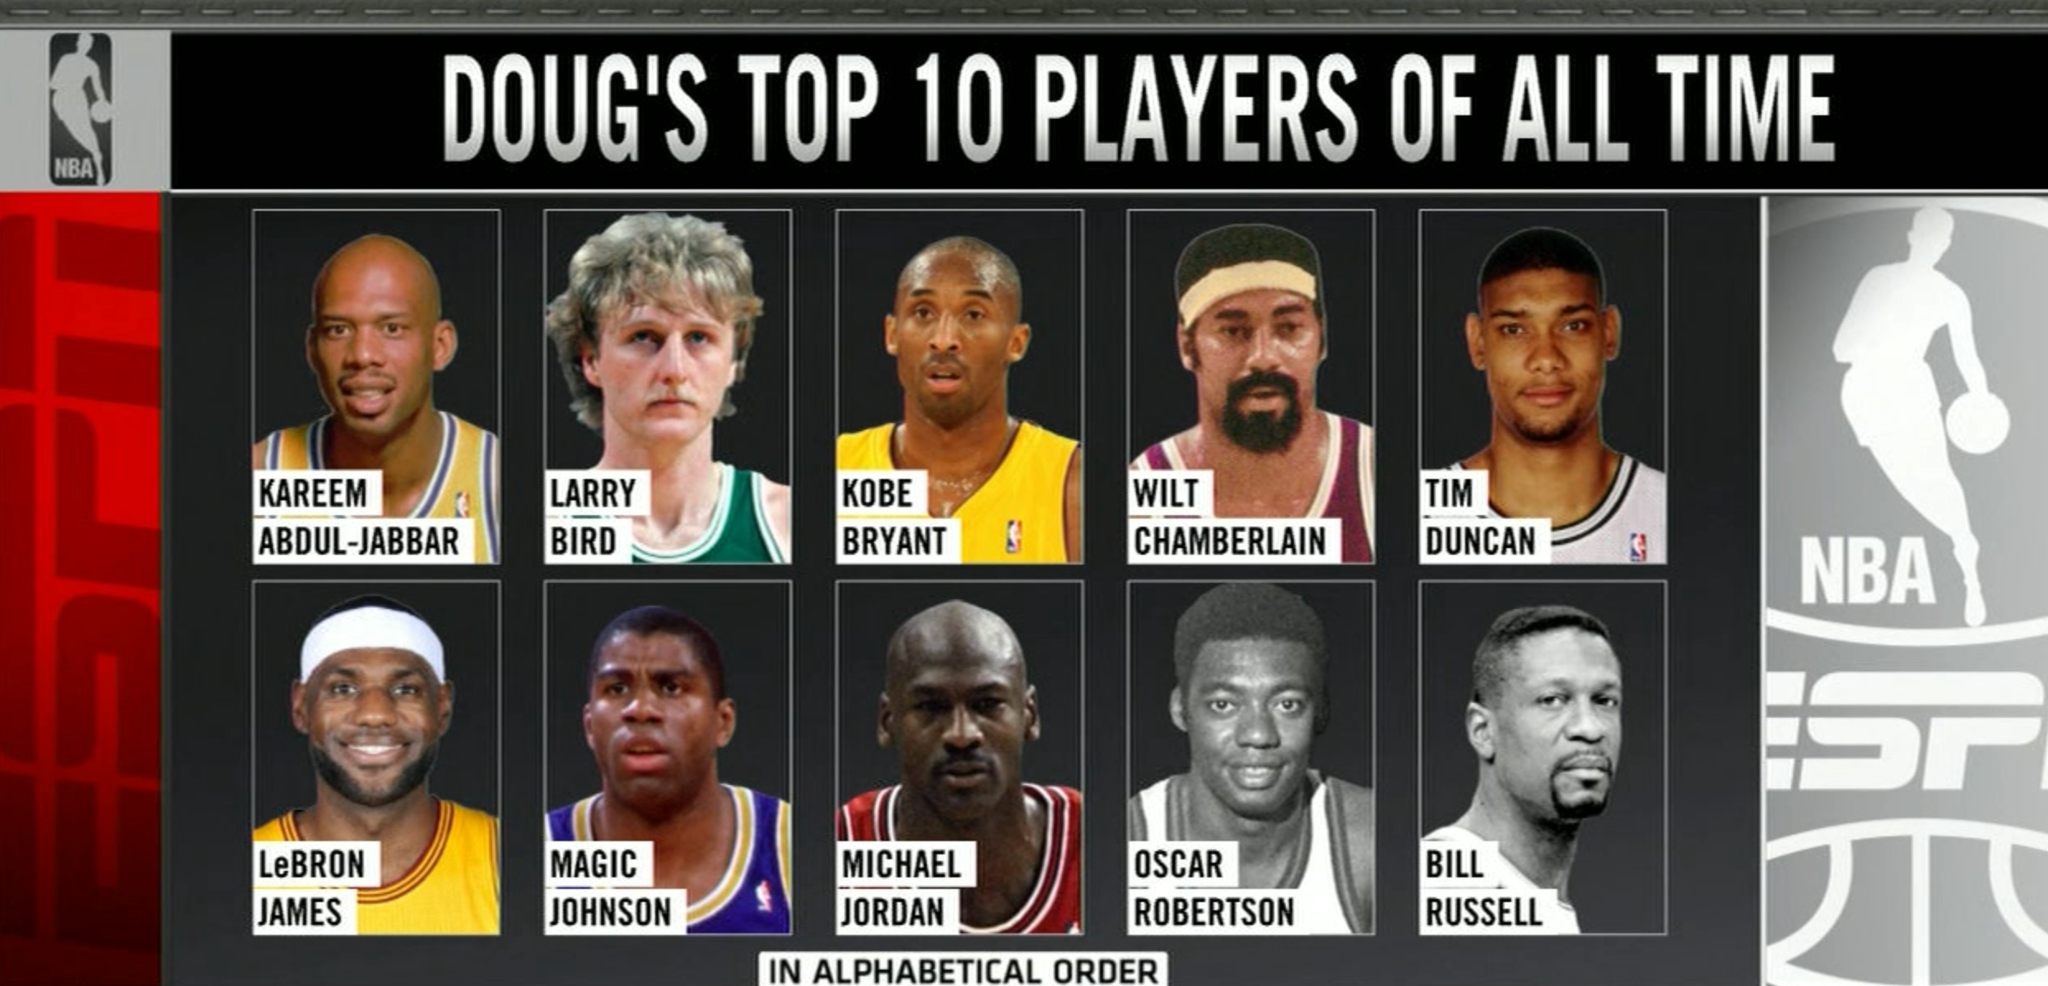 """NBA on ESPN on Twitter: """".@JalenRose and Doug Collins gave us their top 10 players of all time ..."""